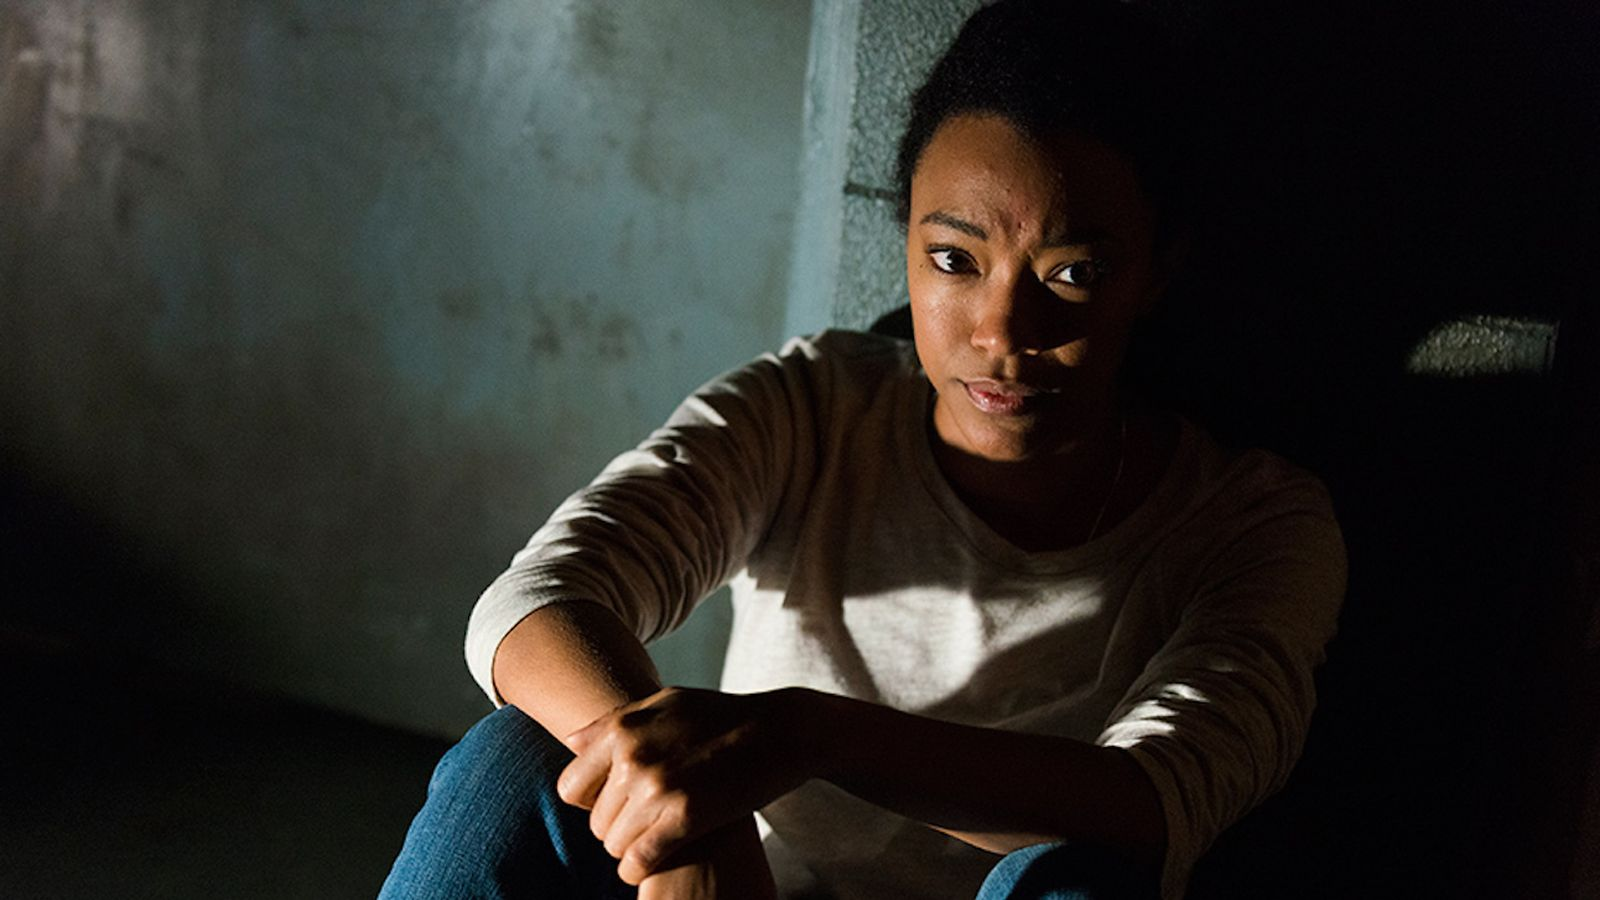 Sonequa Martin-Green as Sasha Williams sitting on the floor in a dark room on The Walking Dead